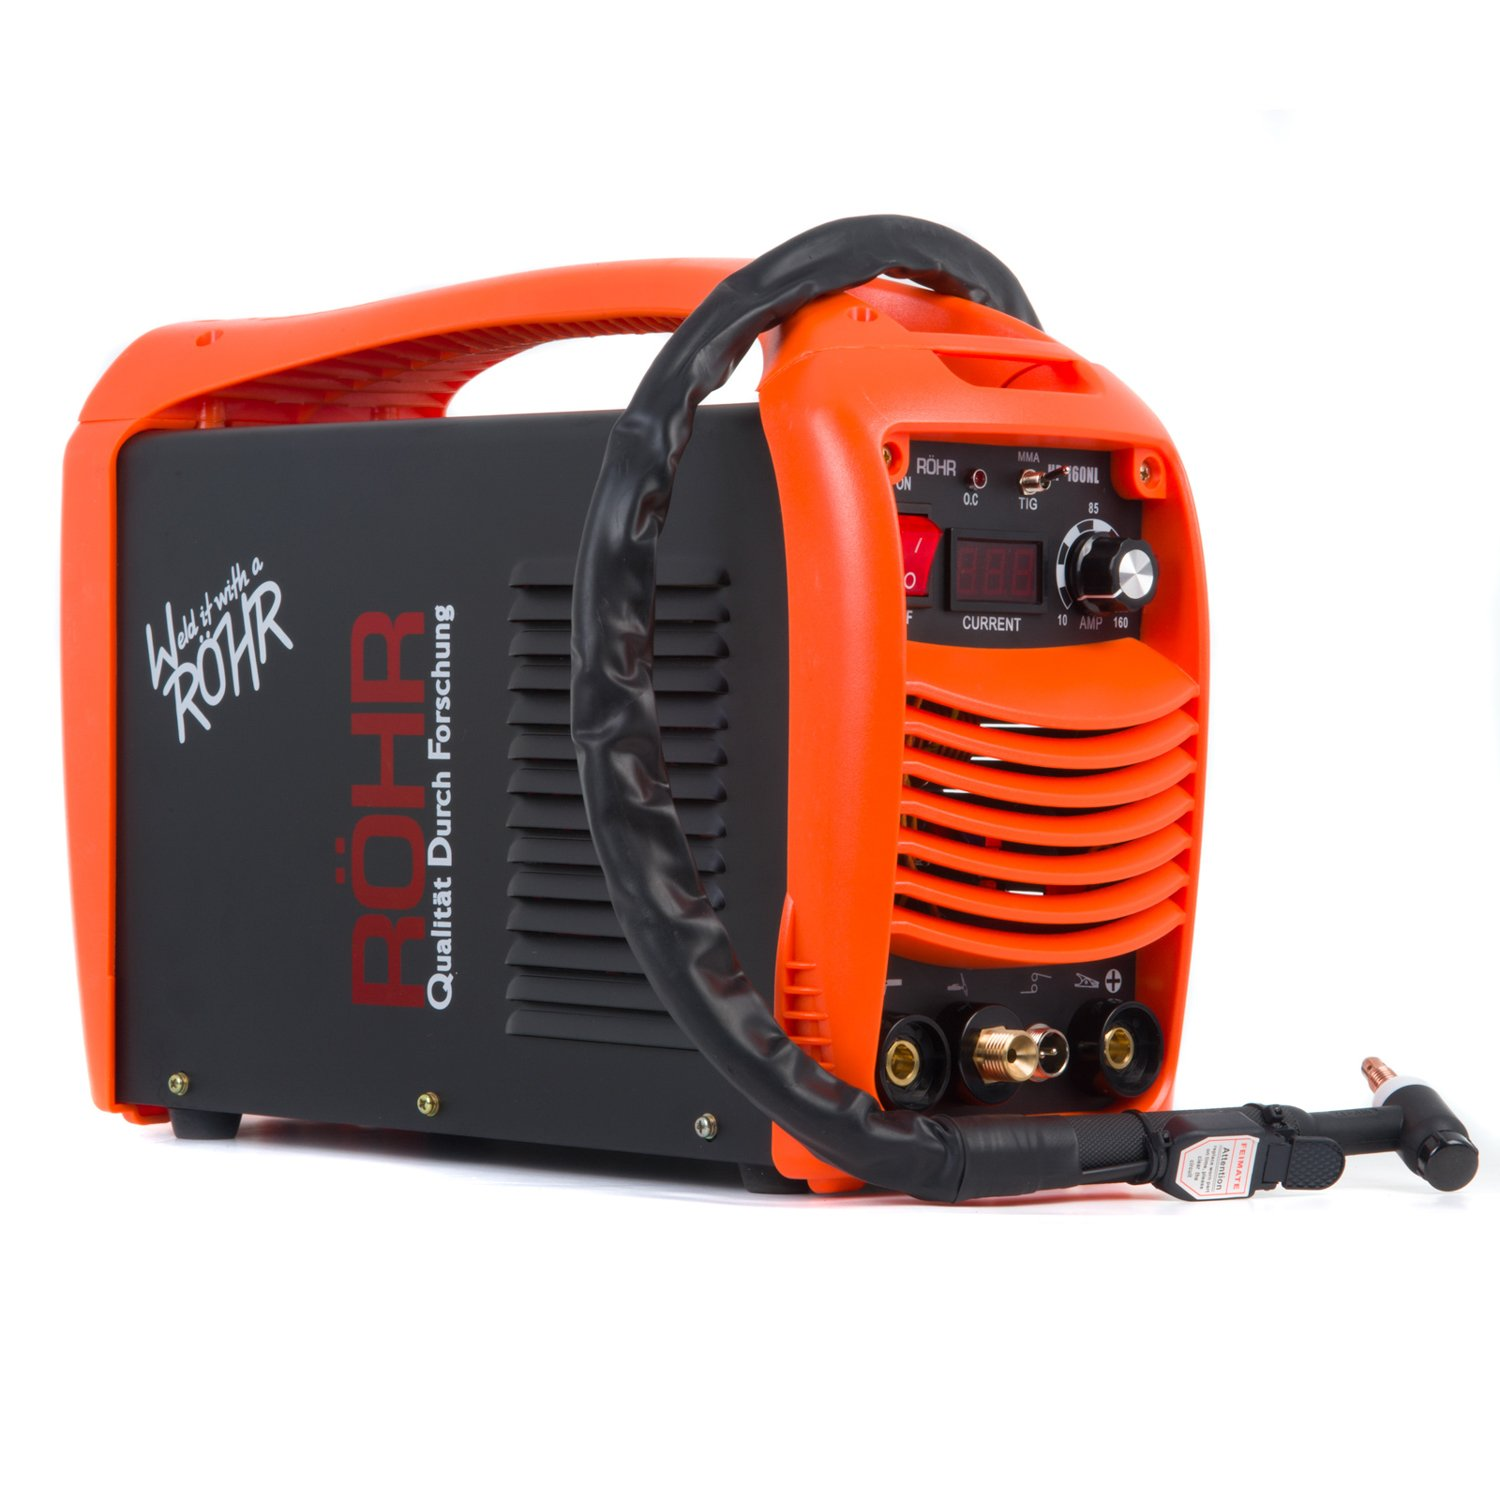 TIG ARC Welder Portable Inverter MMA MOSFET 240V / 160 amp DC - Röhr  HP-160L: Amazon.co.uk: DIY & Tools